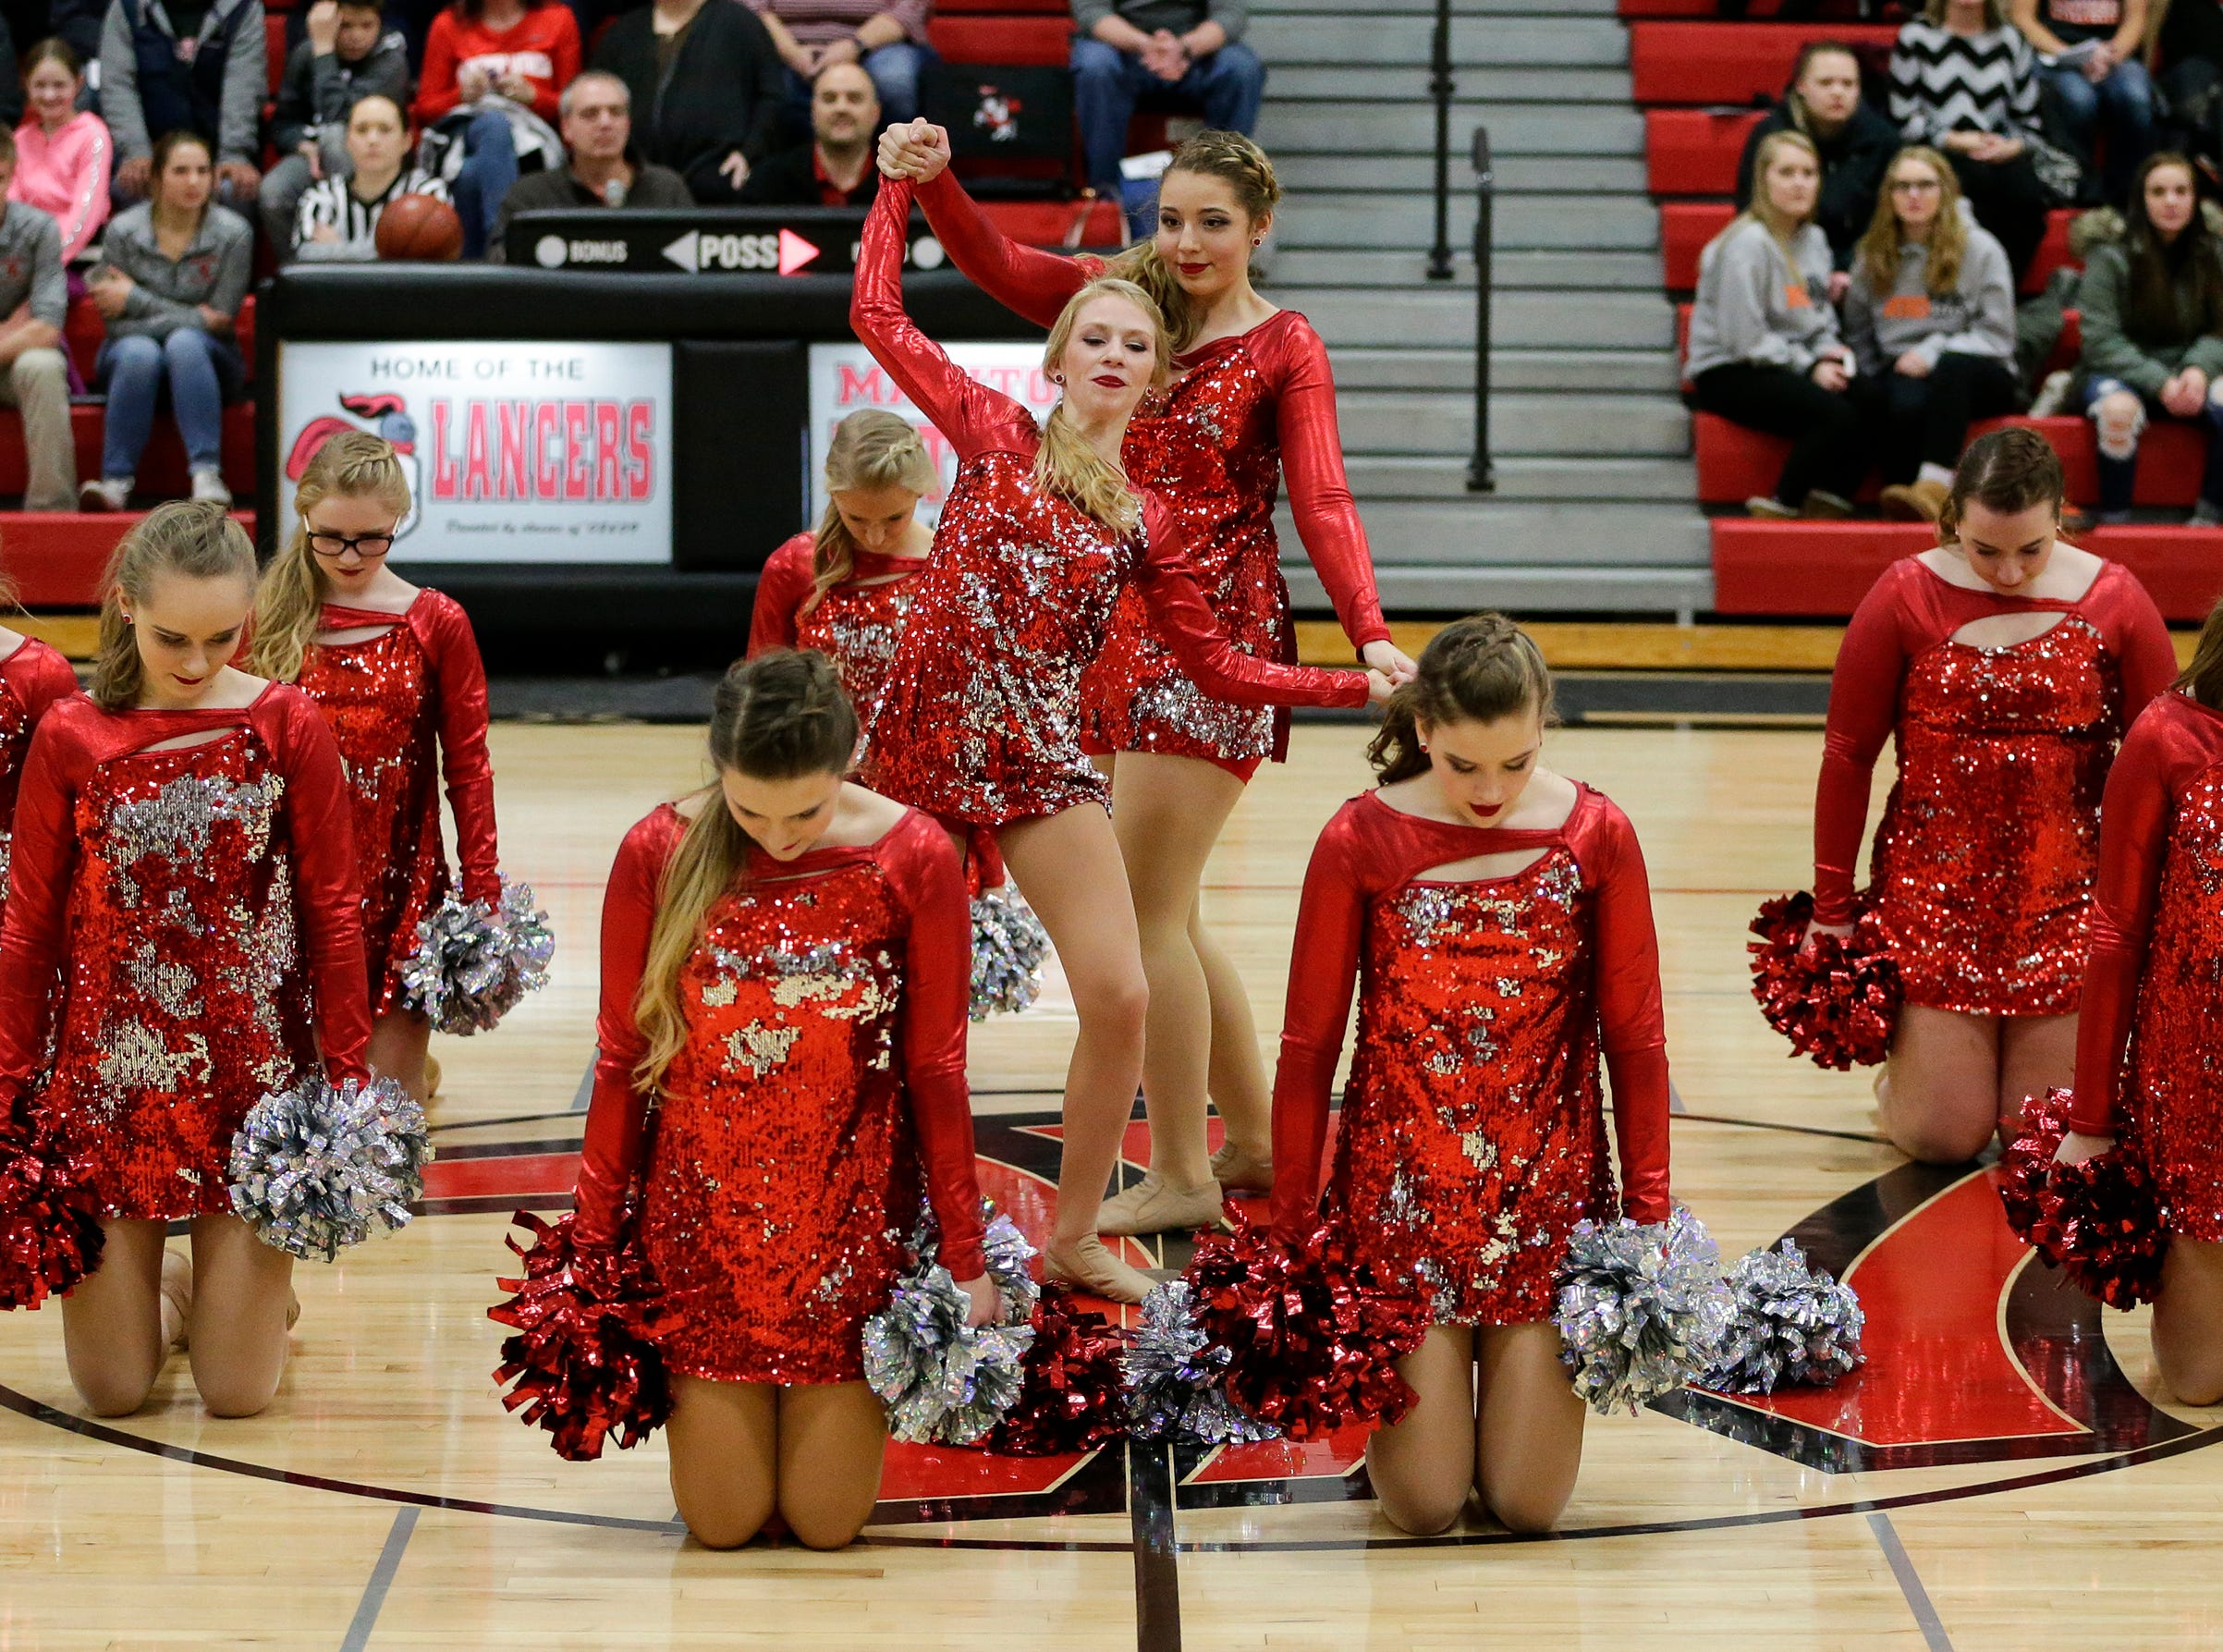 Manitowoc Lutheran's dance team performs at halftime during a matchup against Reedsville at Manitowoc Lutheran High School Thursday, December 20, 2018, in Manitowoc, Wis. Joshua Clark/USA TODAY NETWORK-Wisconsin